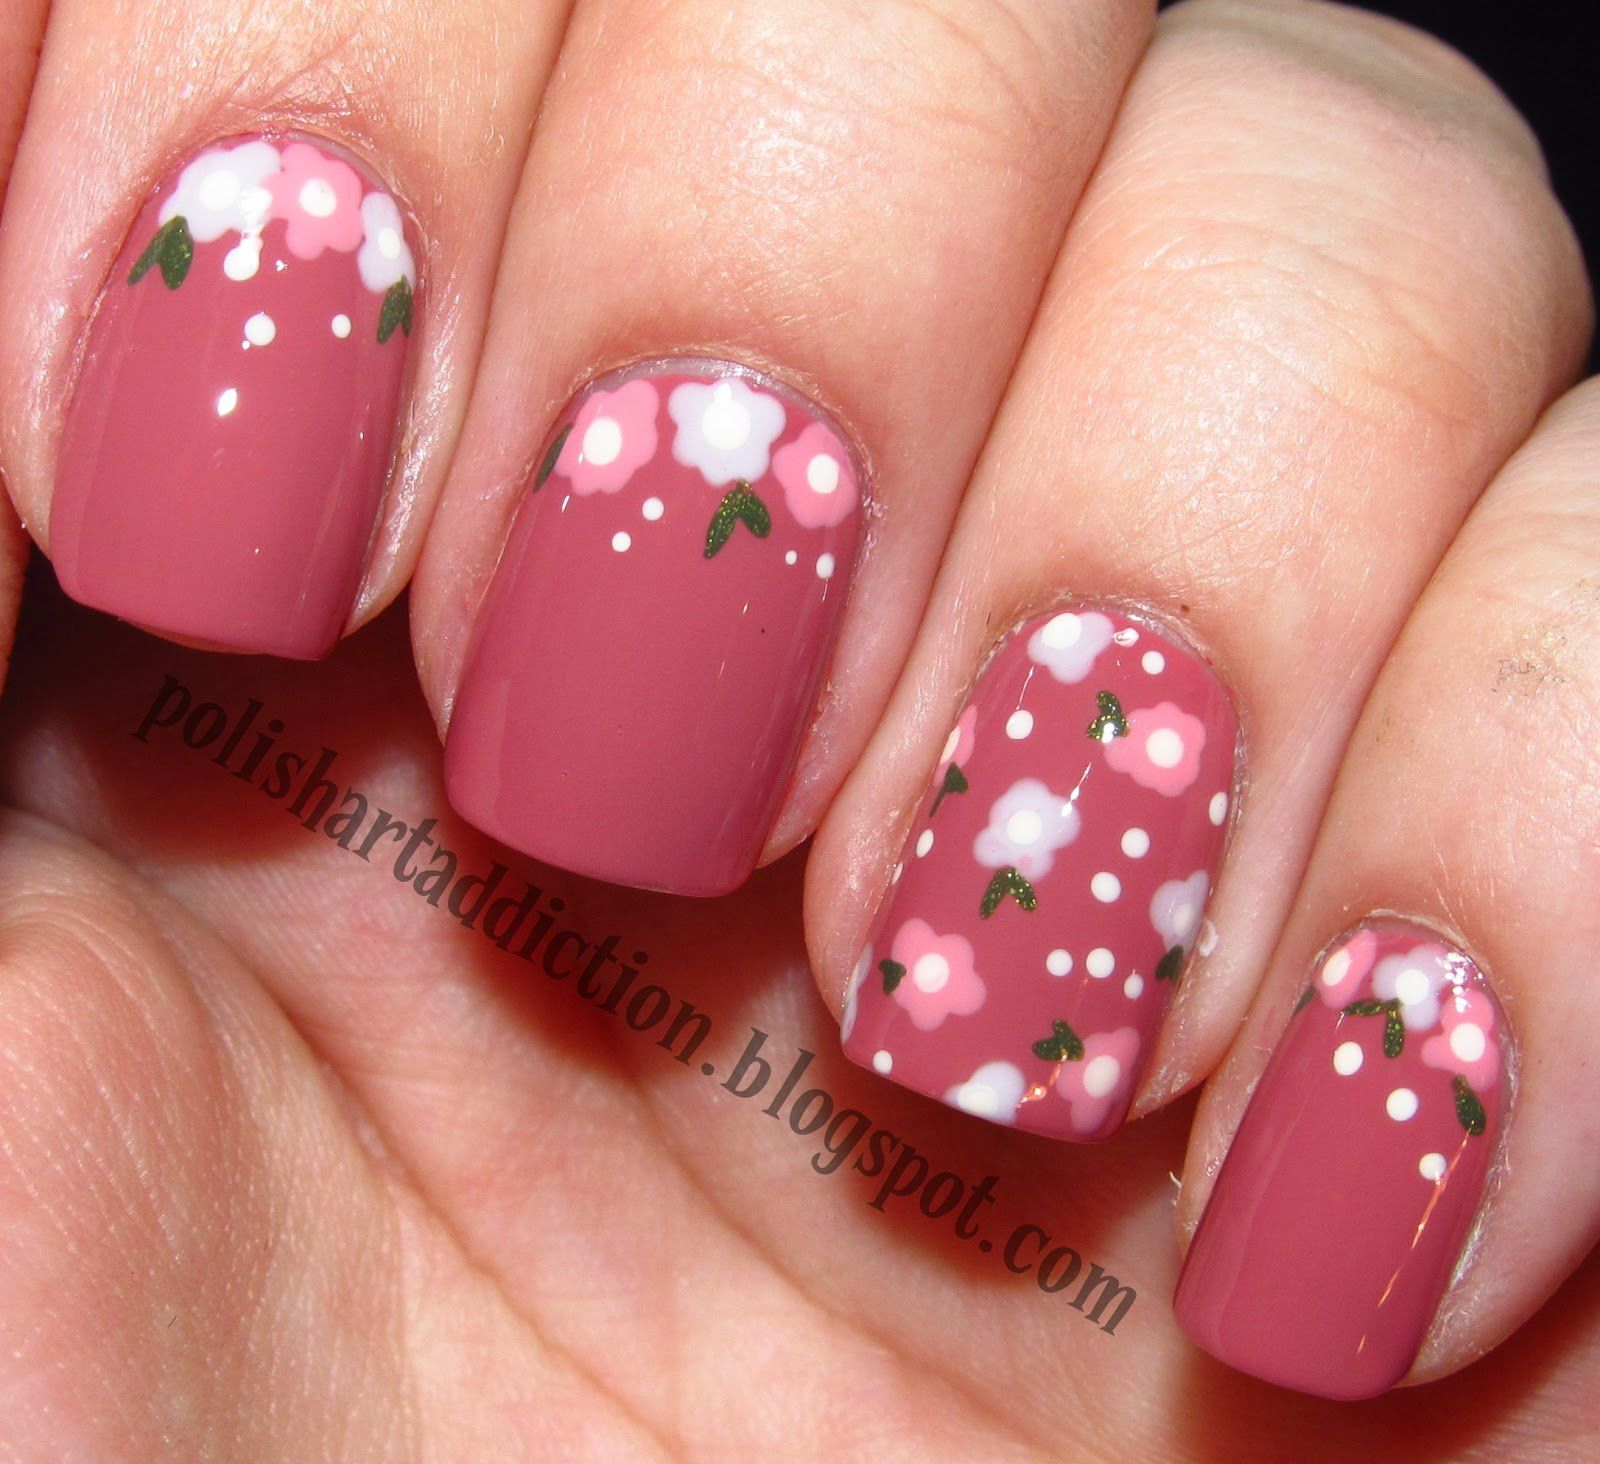 Nail Art - floreale semplice - All Tube and MakeUp